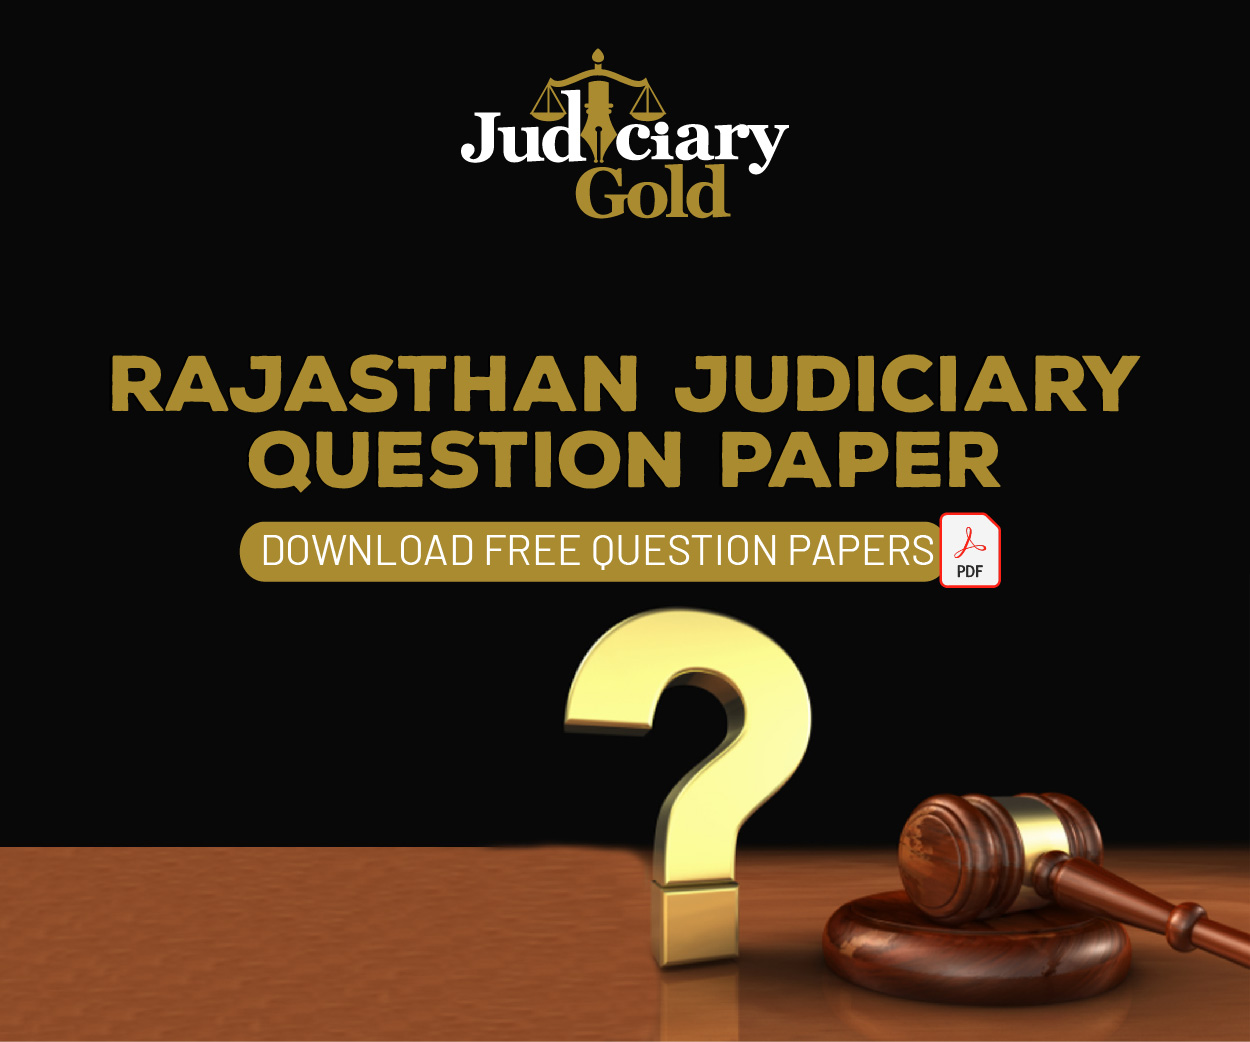 rajasthan Judiciary Question Papers